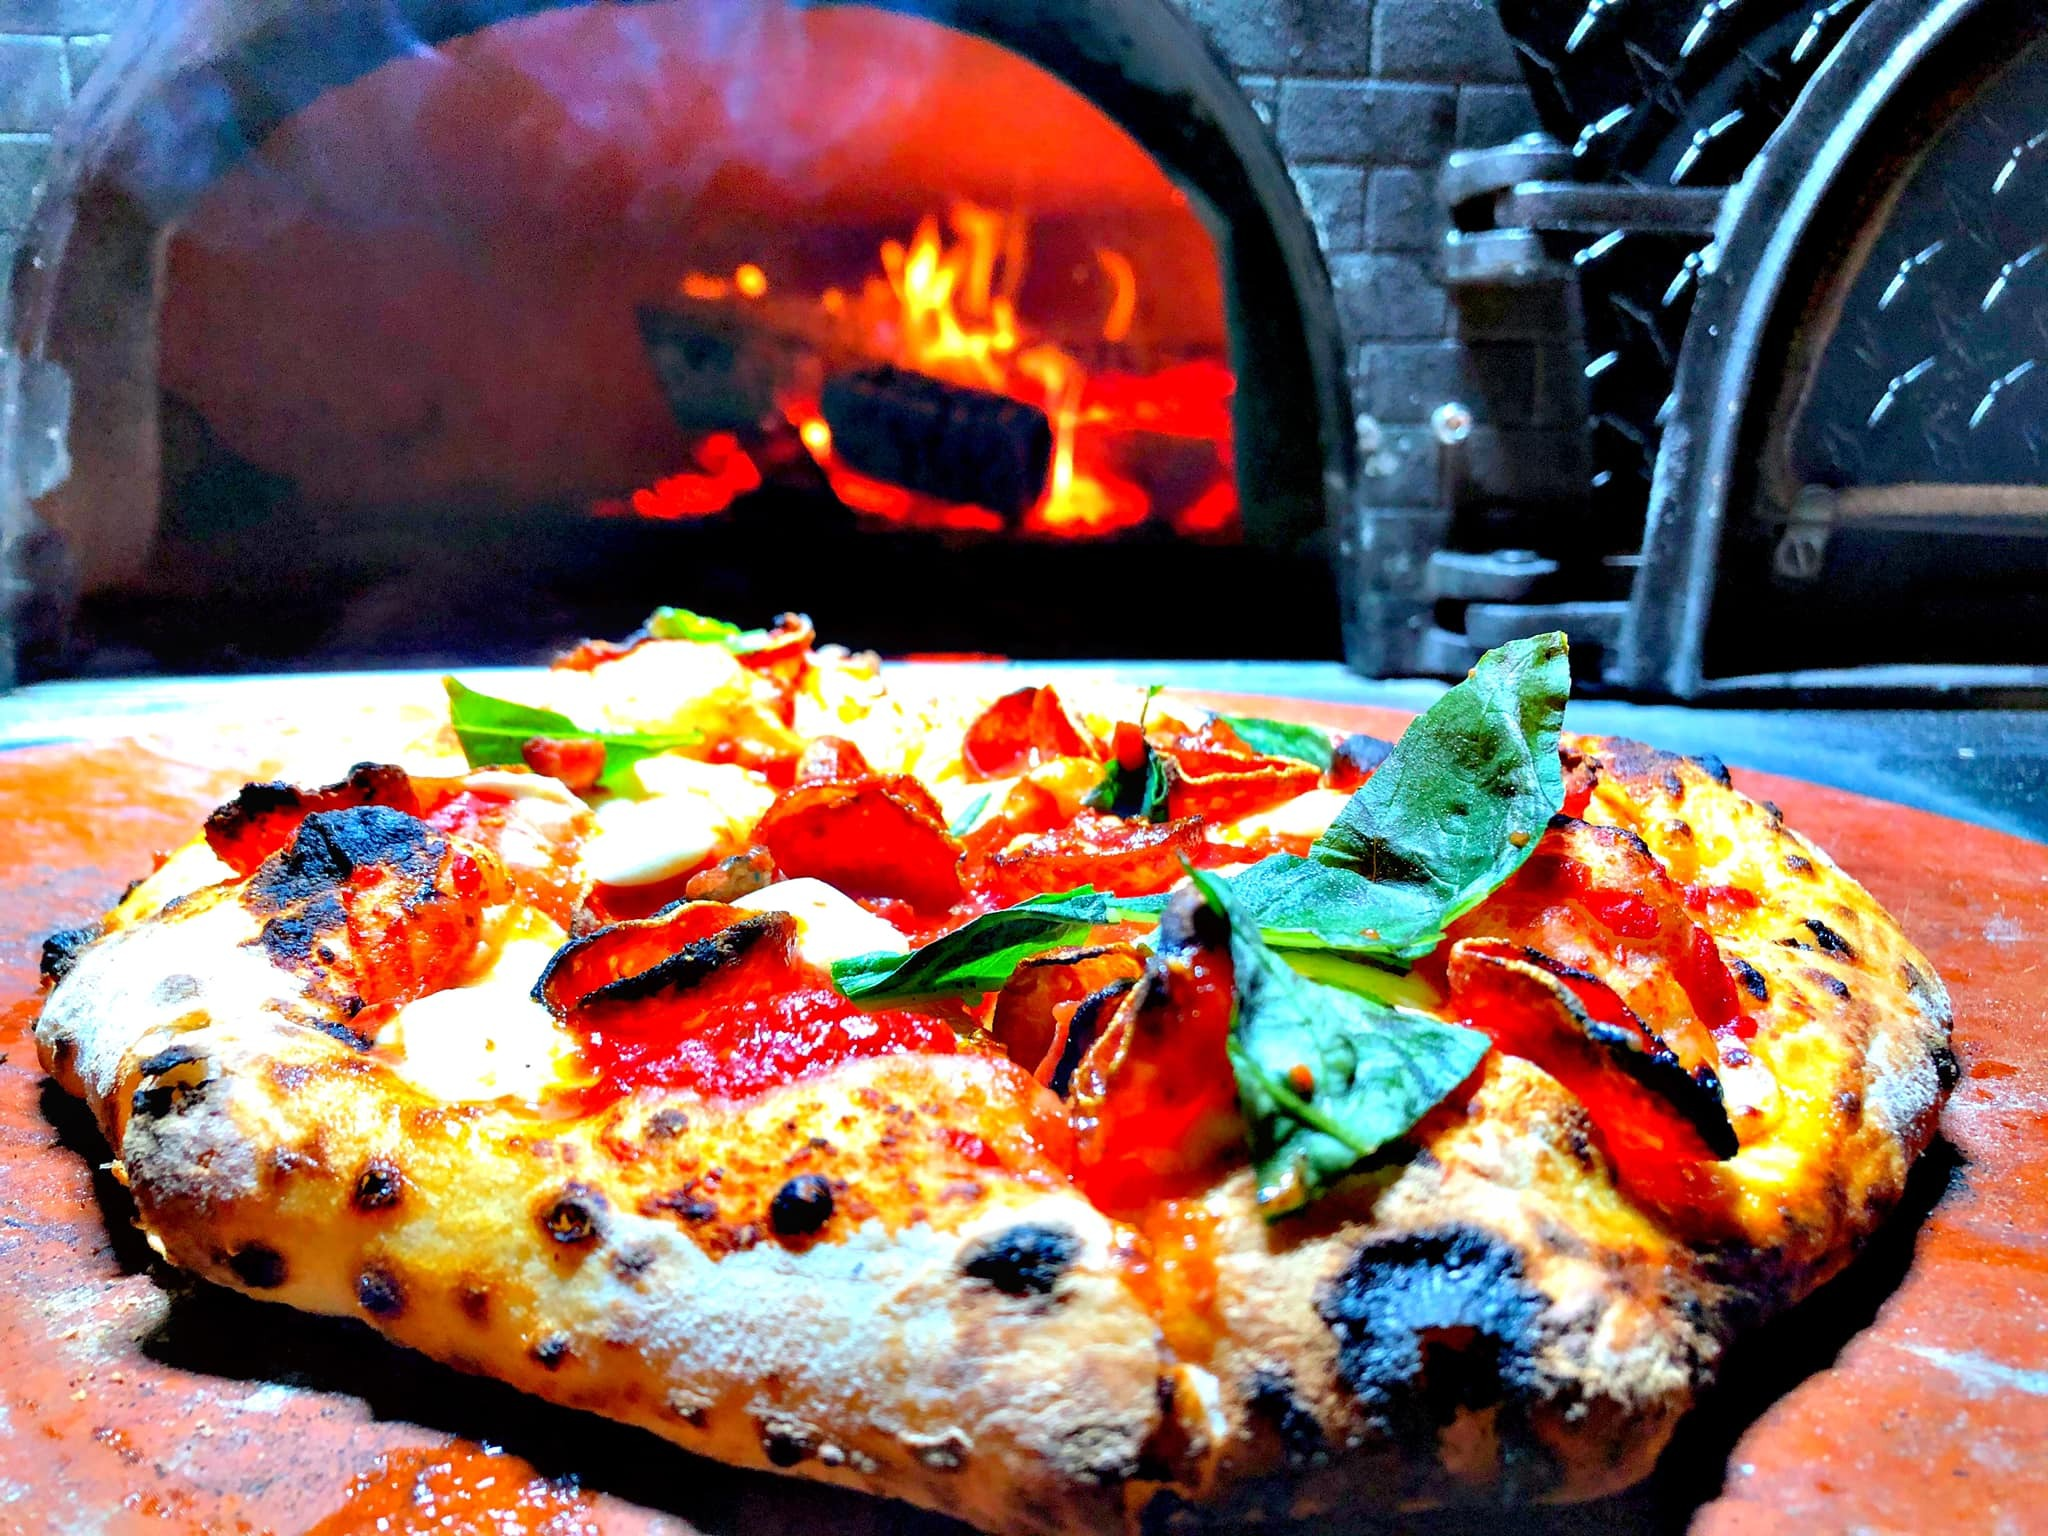 a pizza with a stone oven in the background